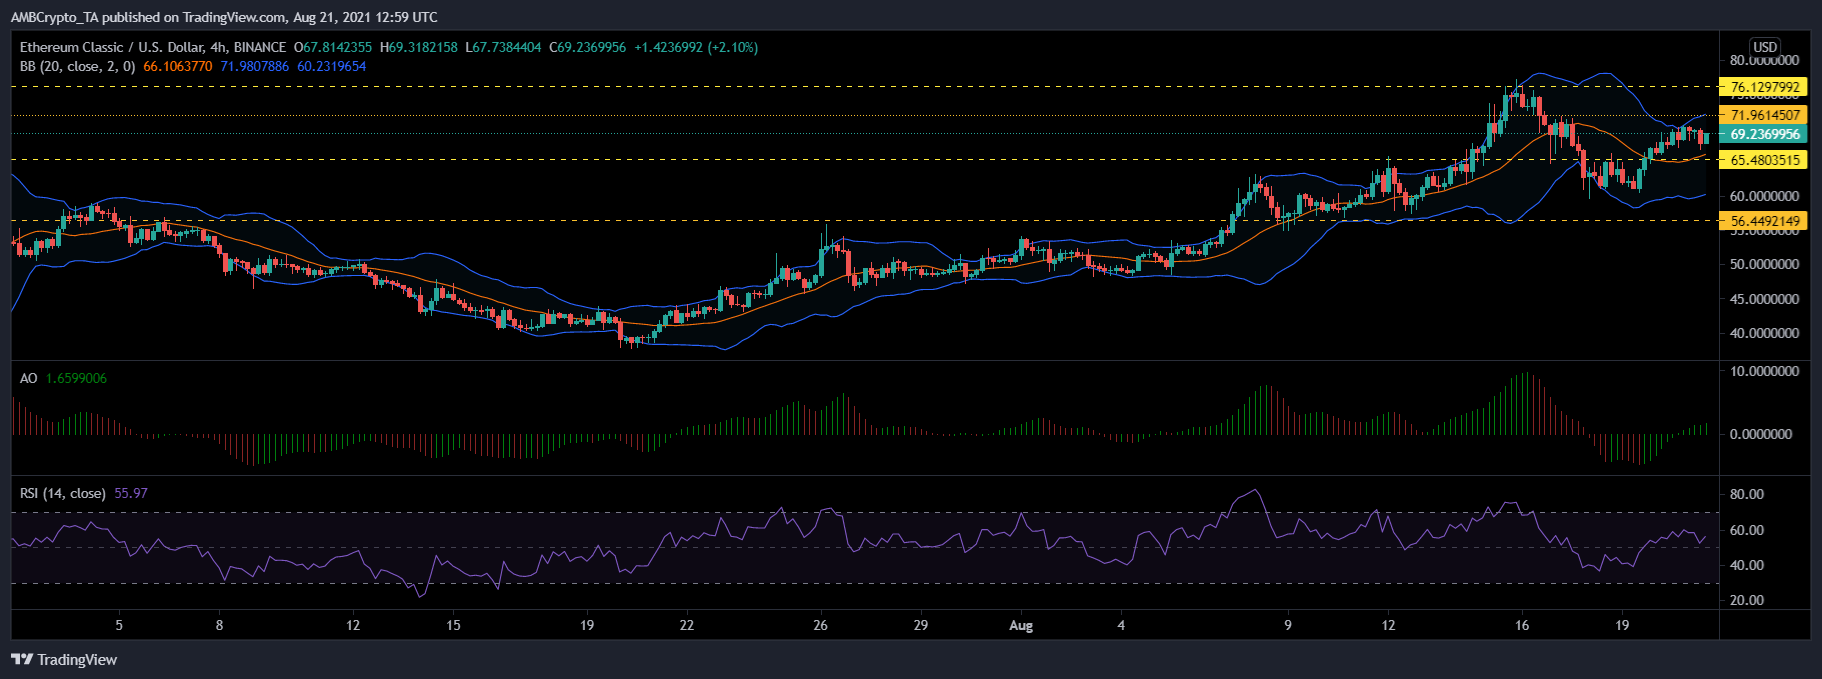 XRP, Ethereum Classic and MATIC Price Analysis - Aug 21